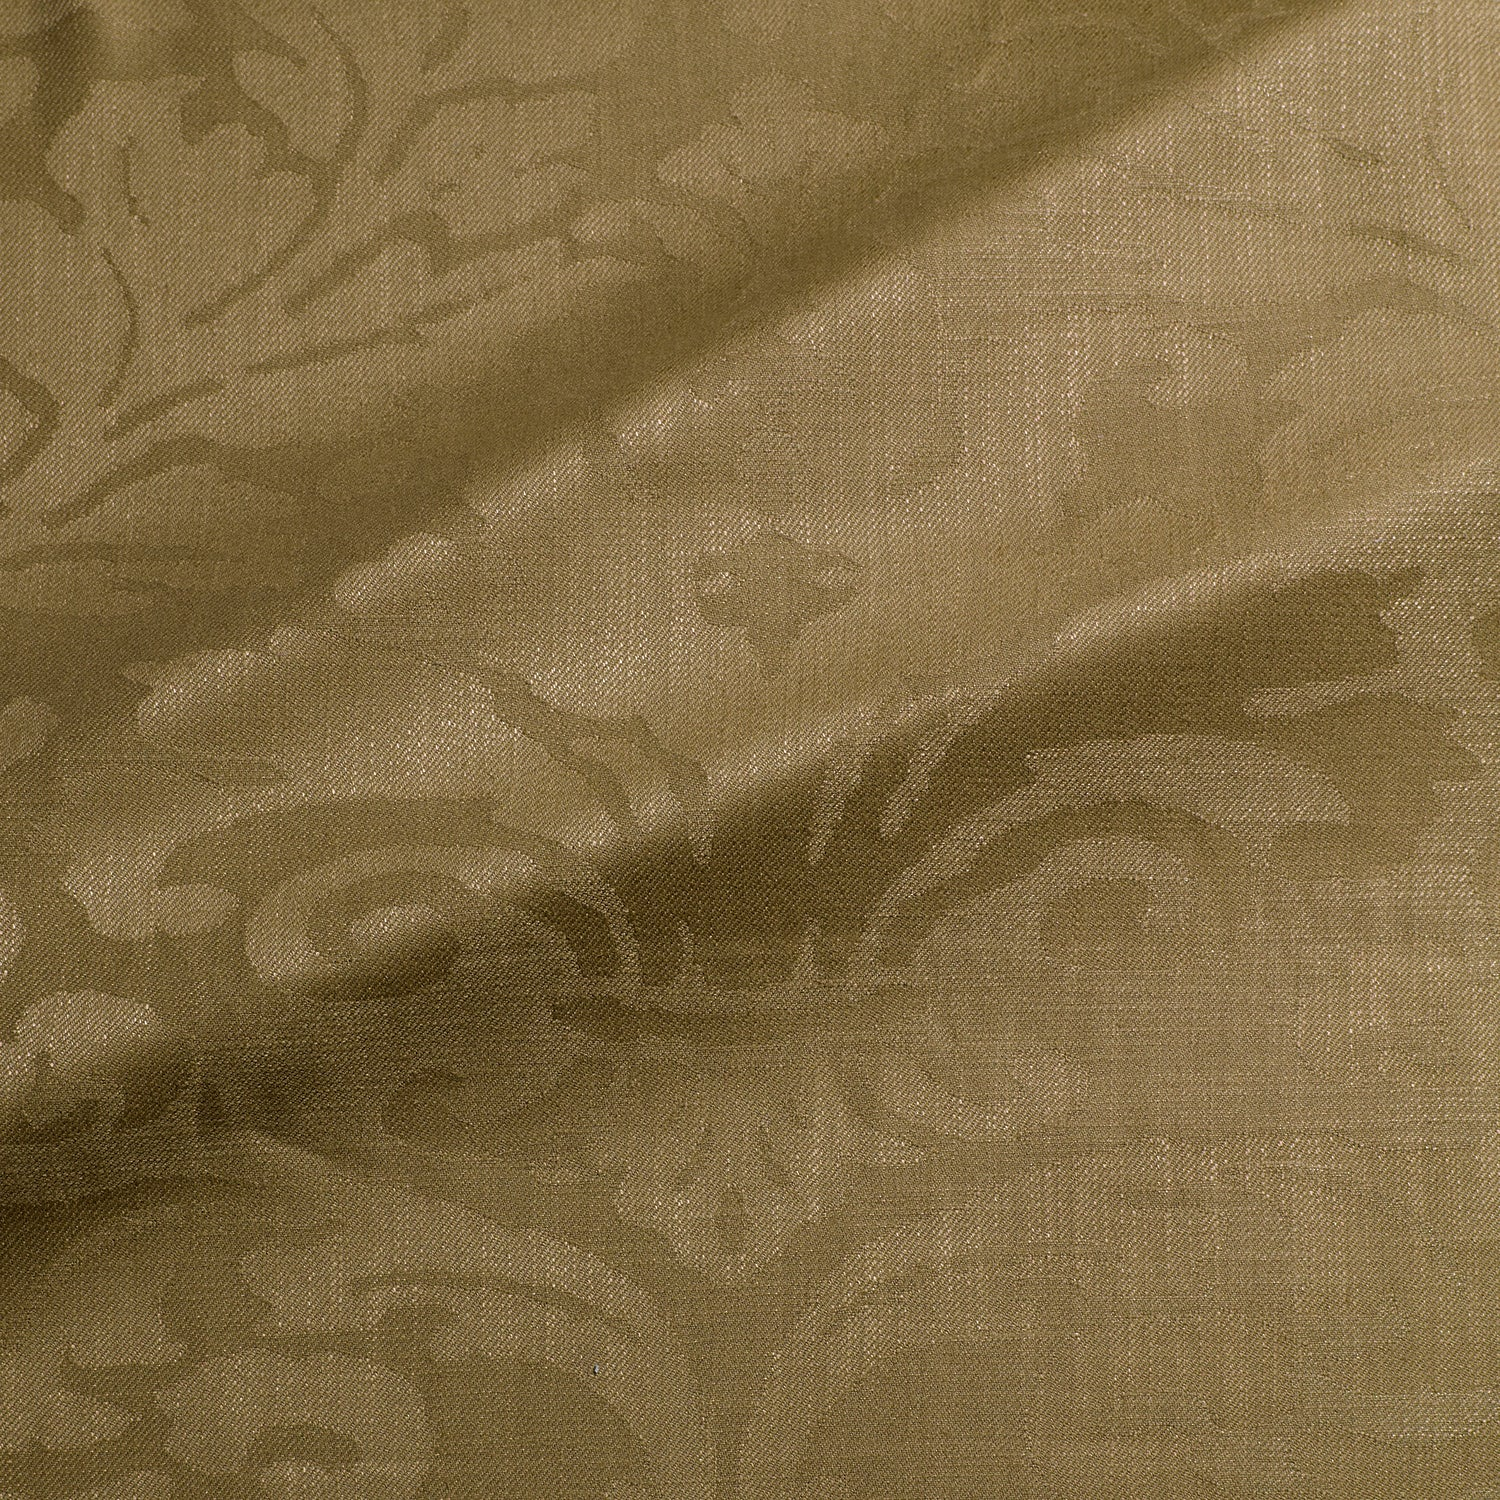 Fabric swatch of a contemporary damask fabric in a brown colour